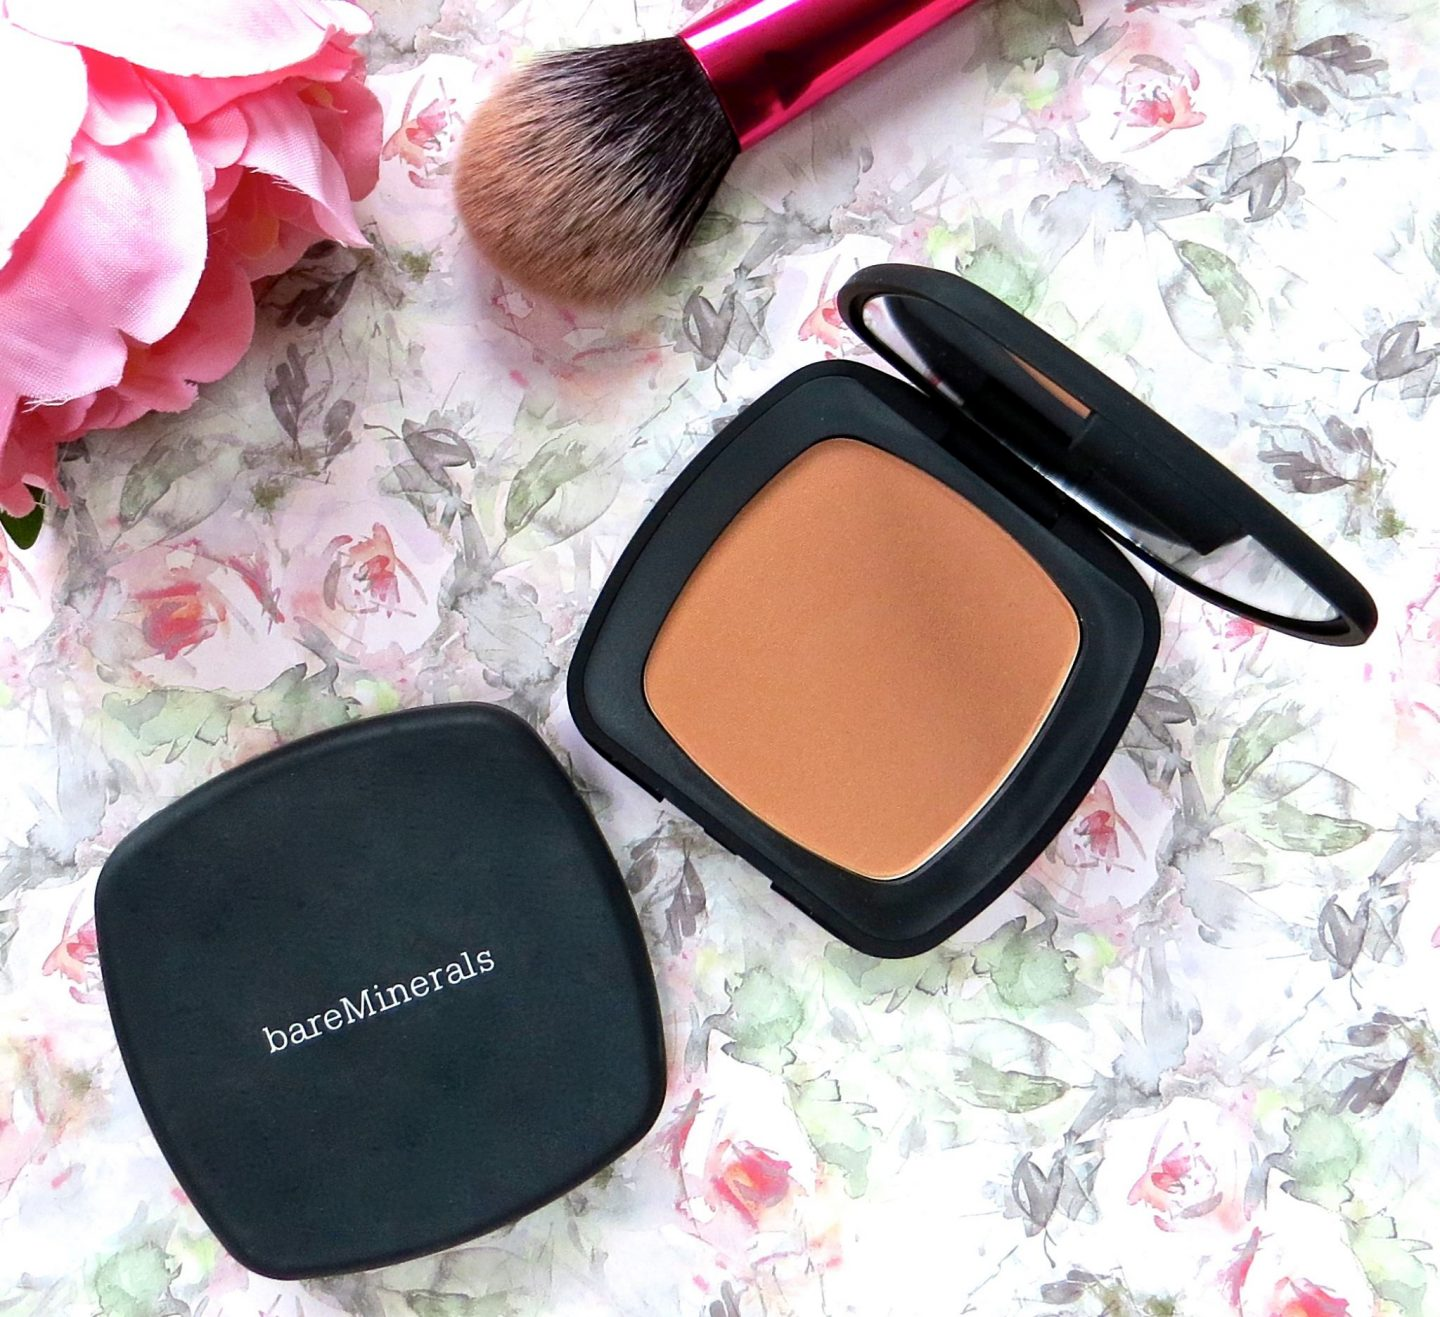 Bare Mineral ready bronzer